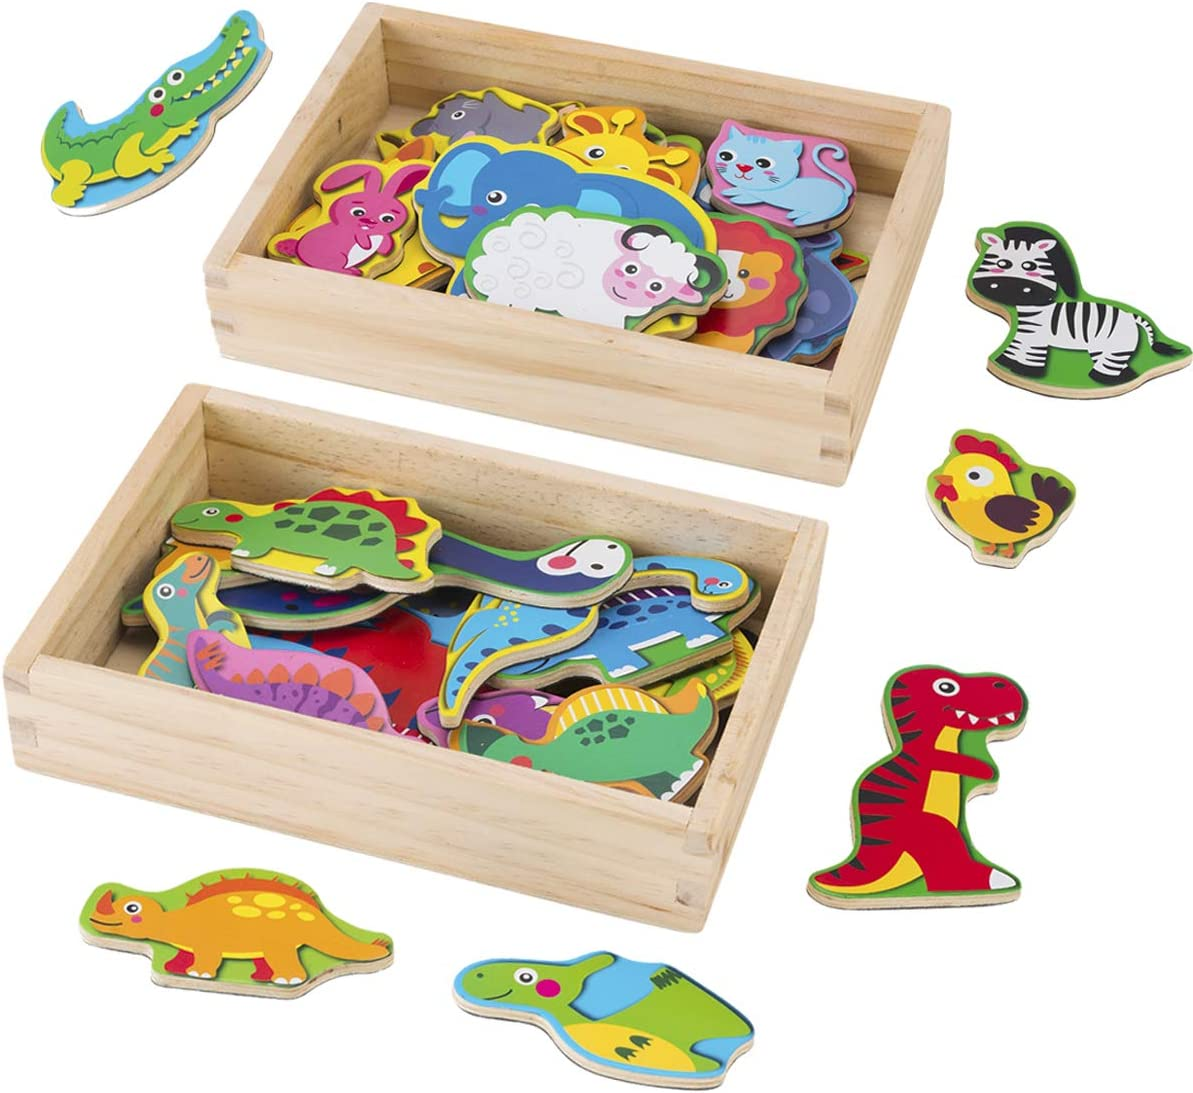 Animal Fridge Max 47% OFF Magnets for Toddlers 38 Dinos Zoo Animals Max 65% OFF Pcs and